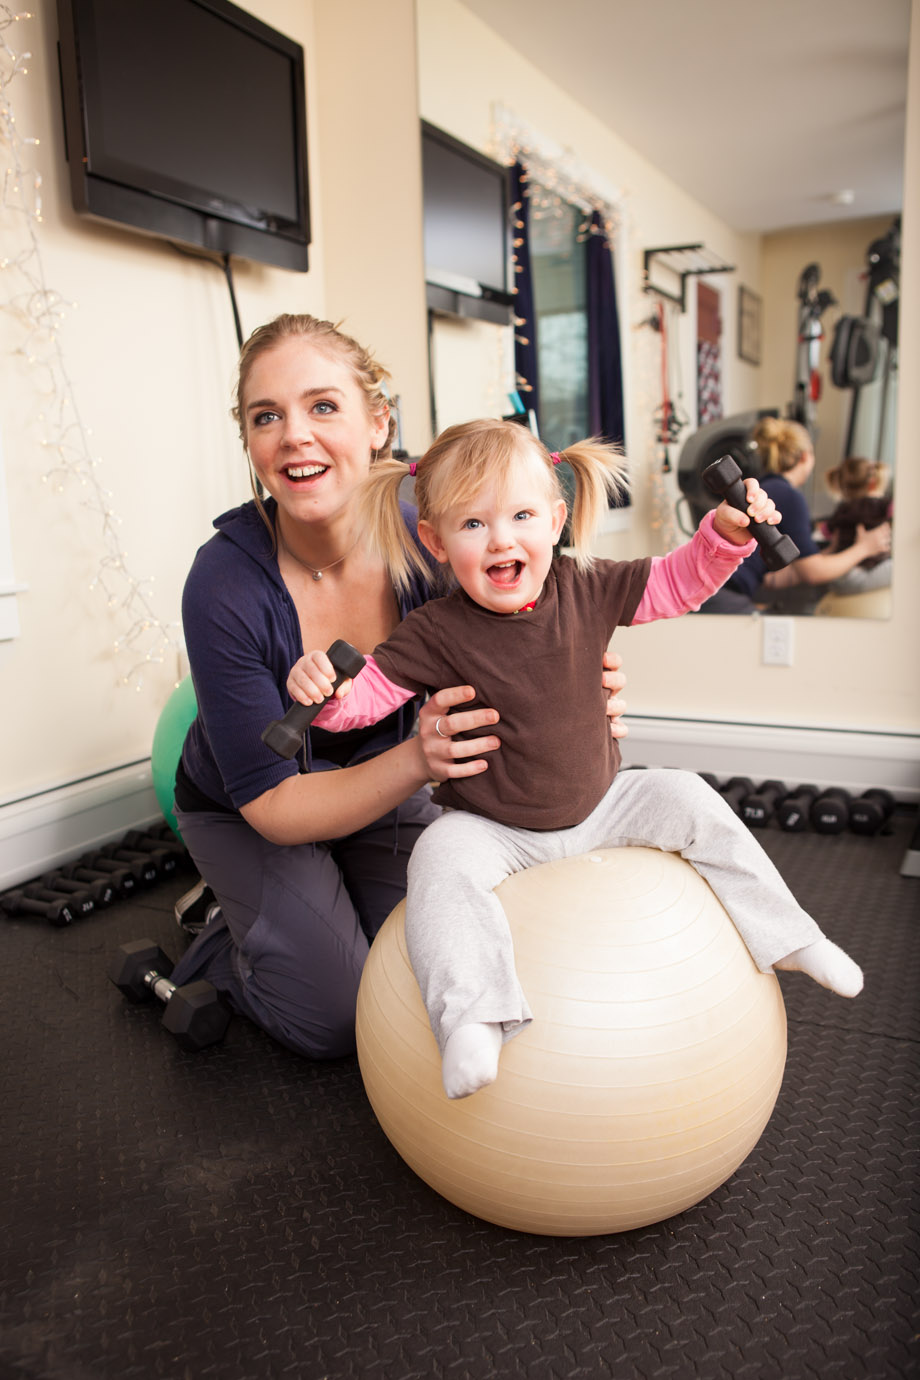 Mom and daughter lifestyle fitness photo